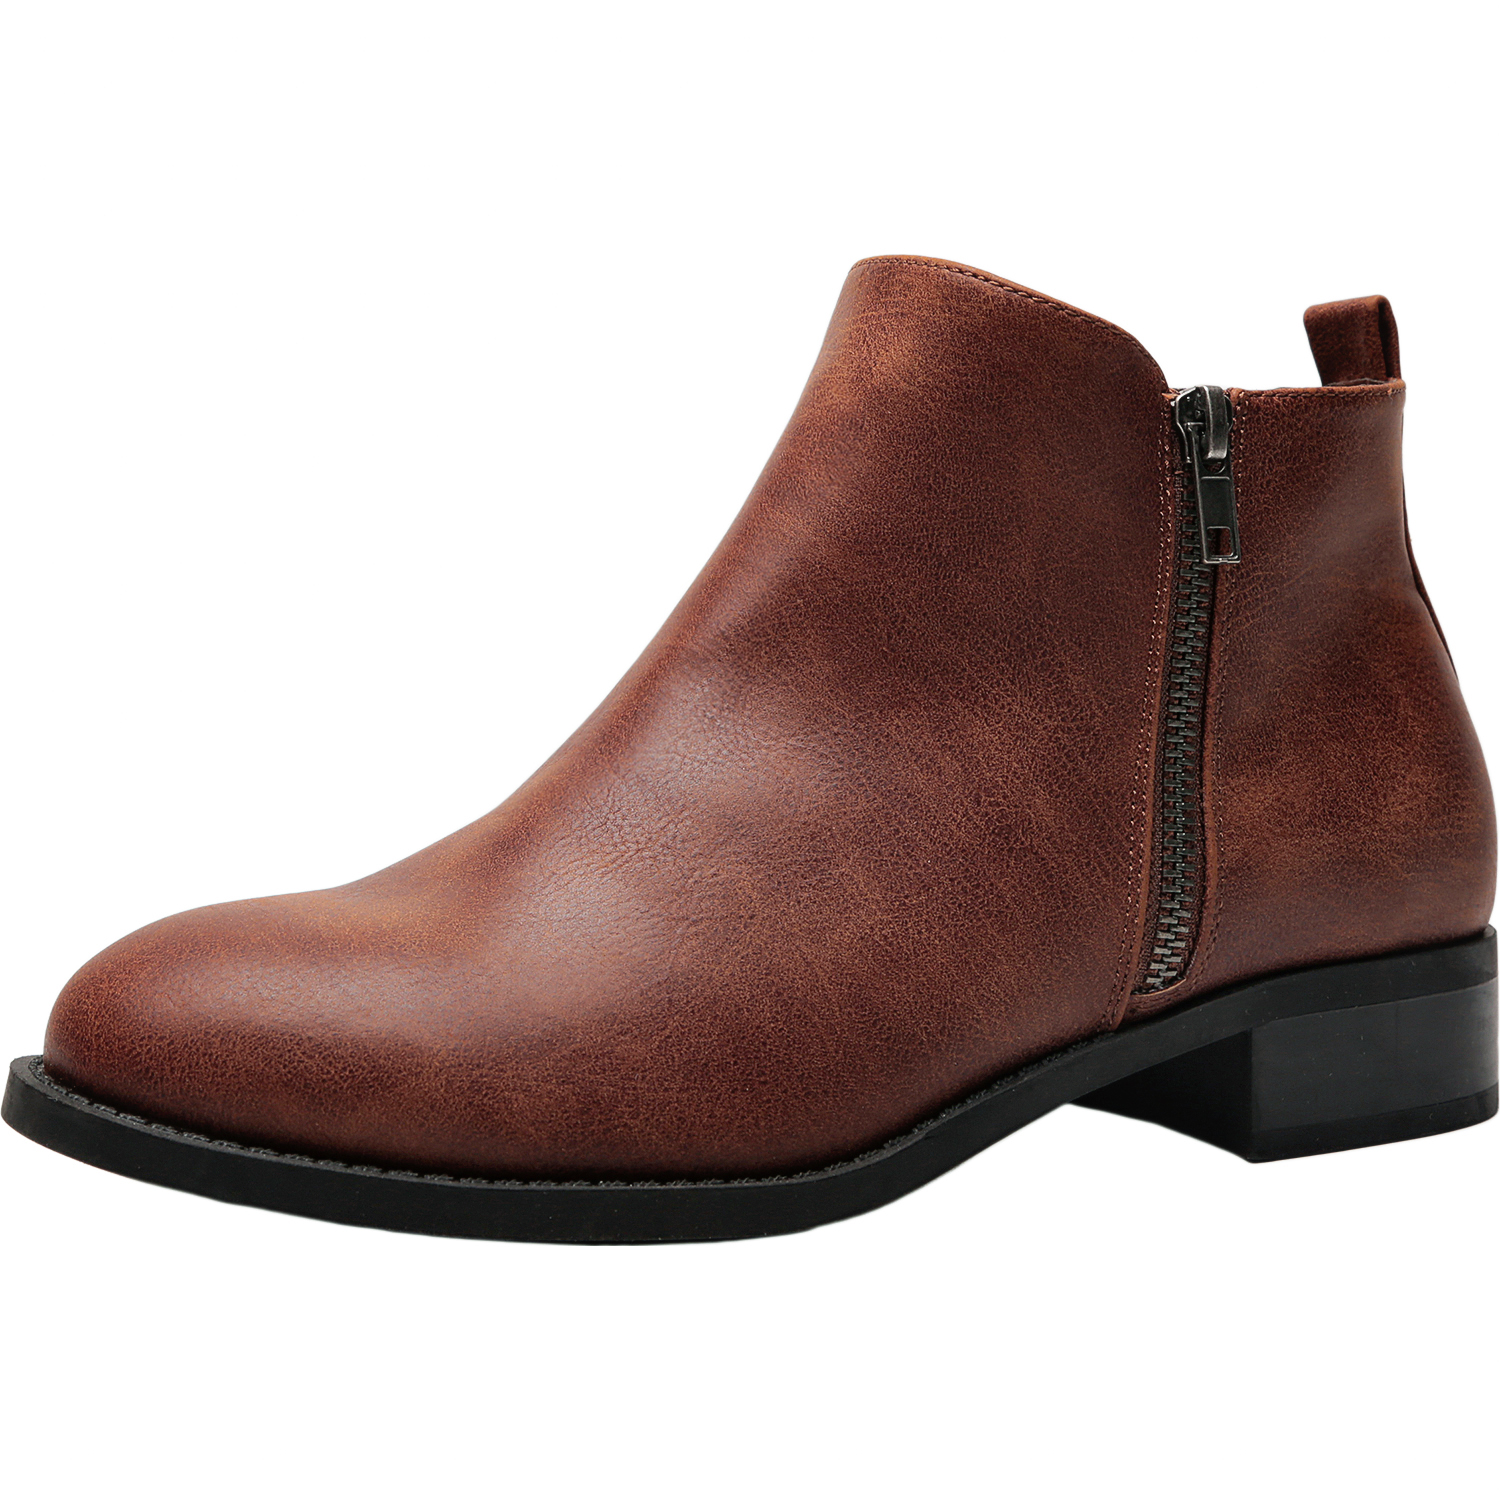 4e35af235fb US  49.99 - Women s Wide Width Ankle Booties - Classic Low Flat Heel Side  Zipper Comfortable Boots. - www.luoika-us.com